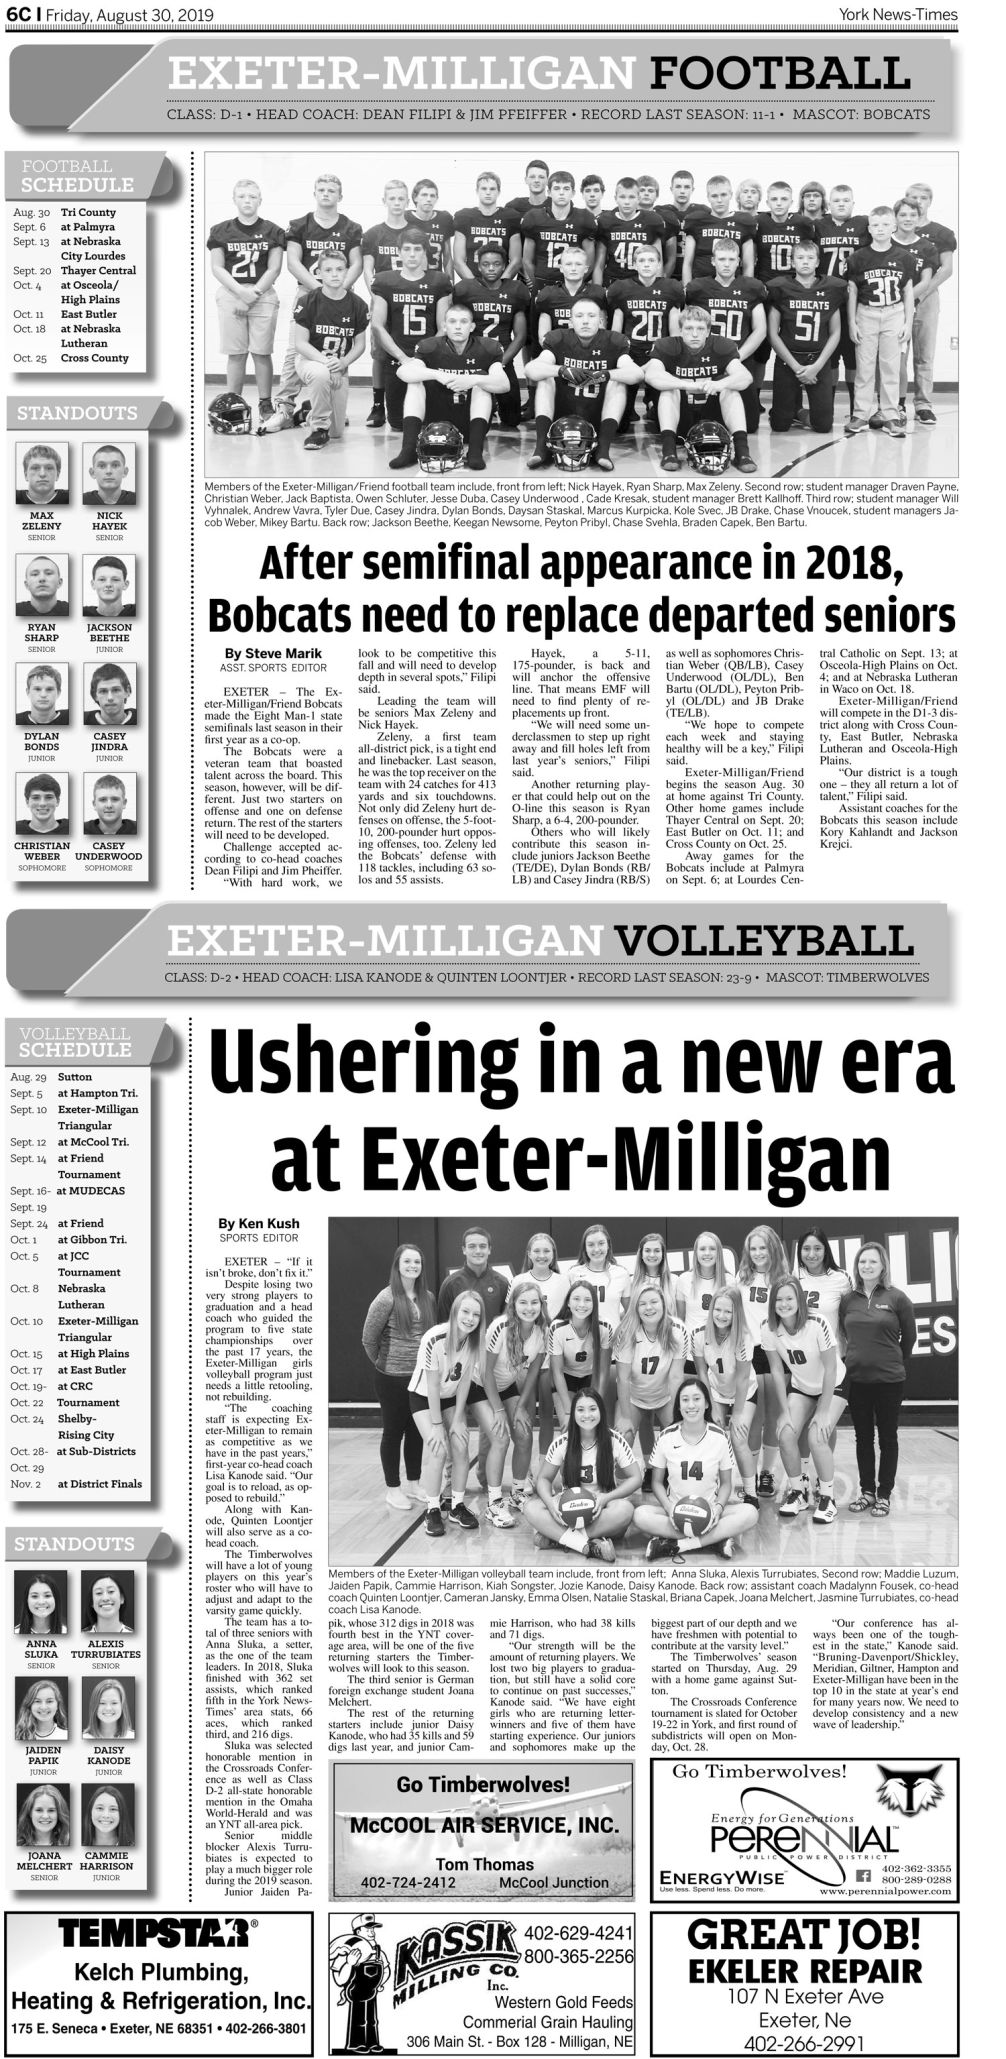 2019 Fall Sports Preview | Special Sections | yorknewstimes com